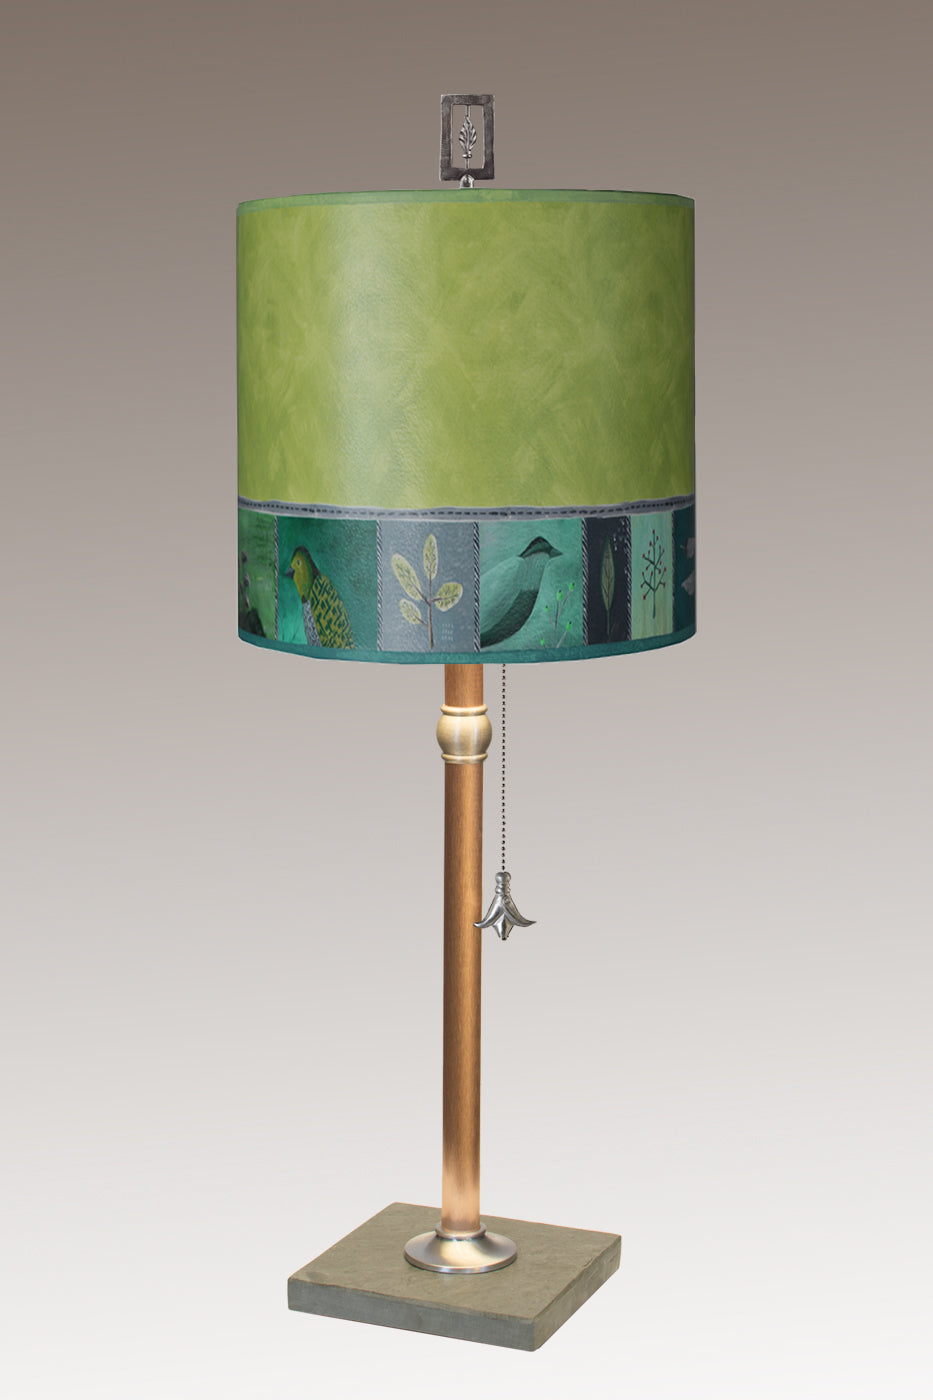 Copper Table Lamp with Medium Drum Shade in Woodland Trails in Leaf